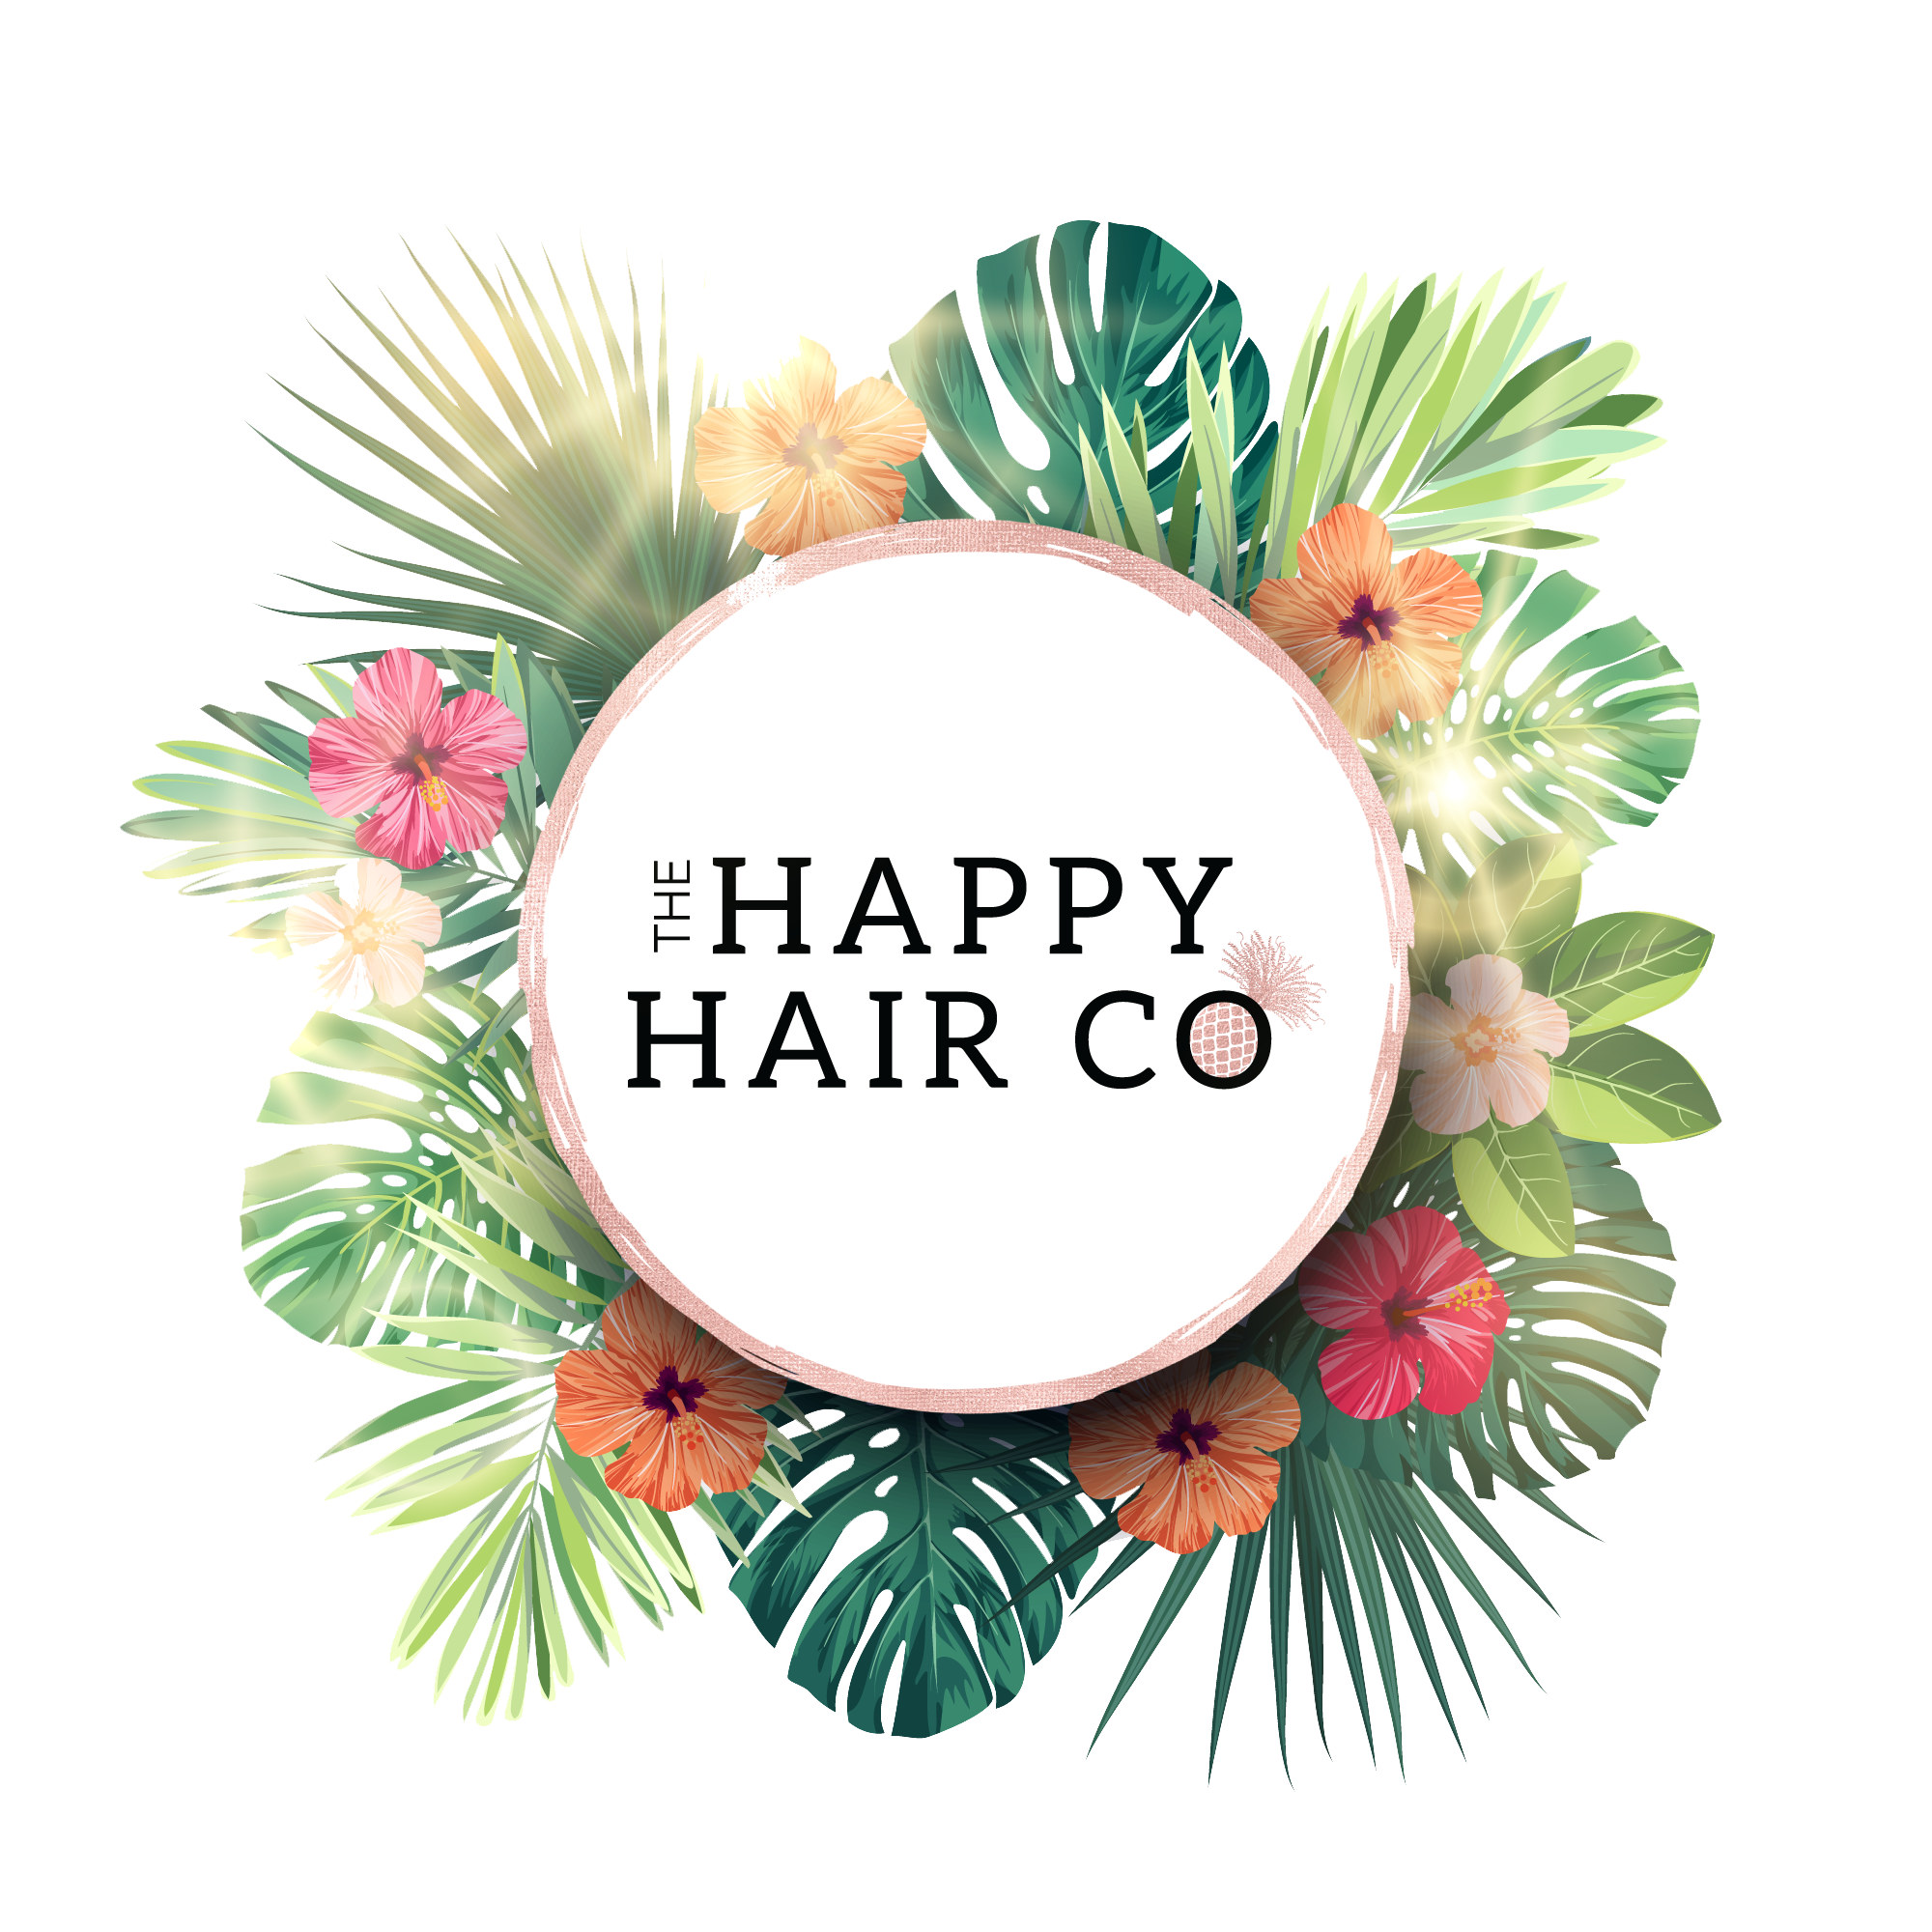 The Happy Hair Co.